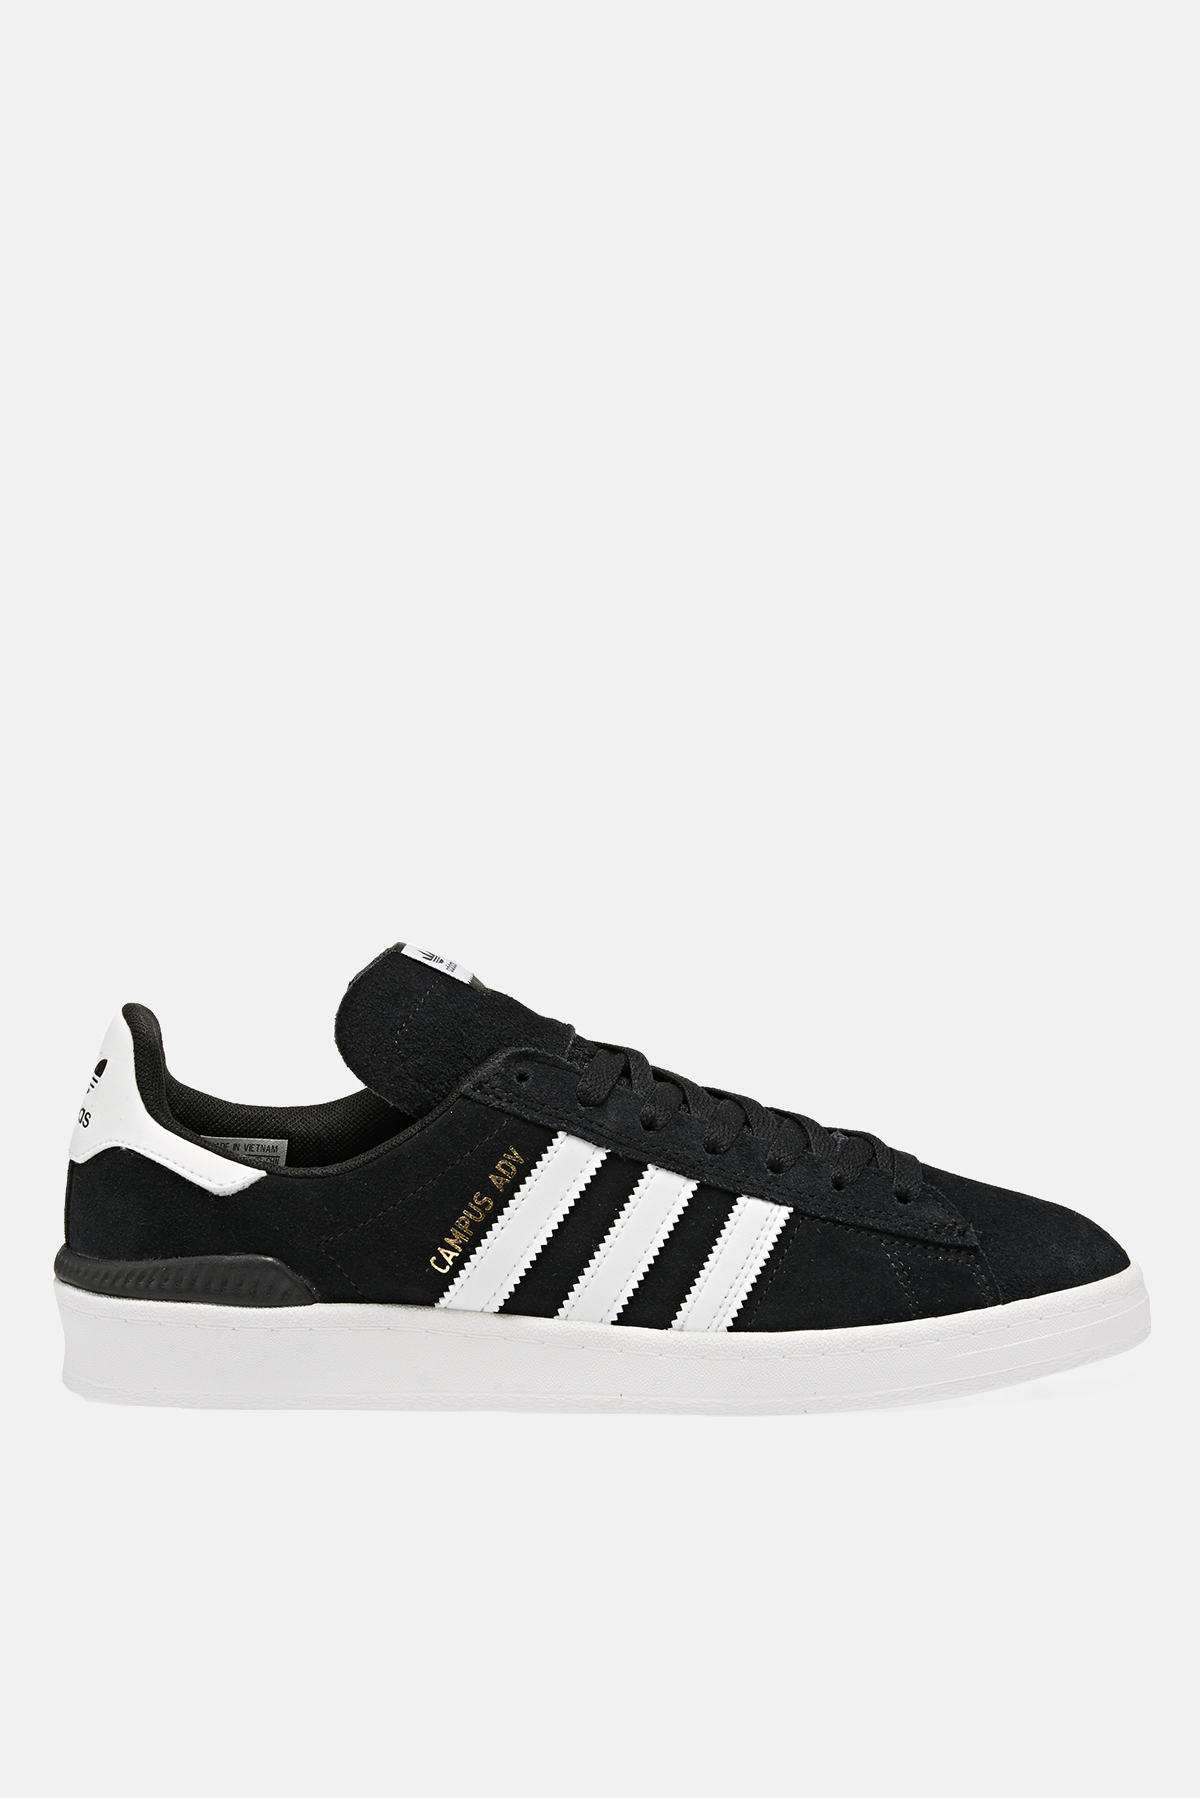 Adidas Skateboarding available from Priory